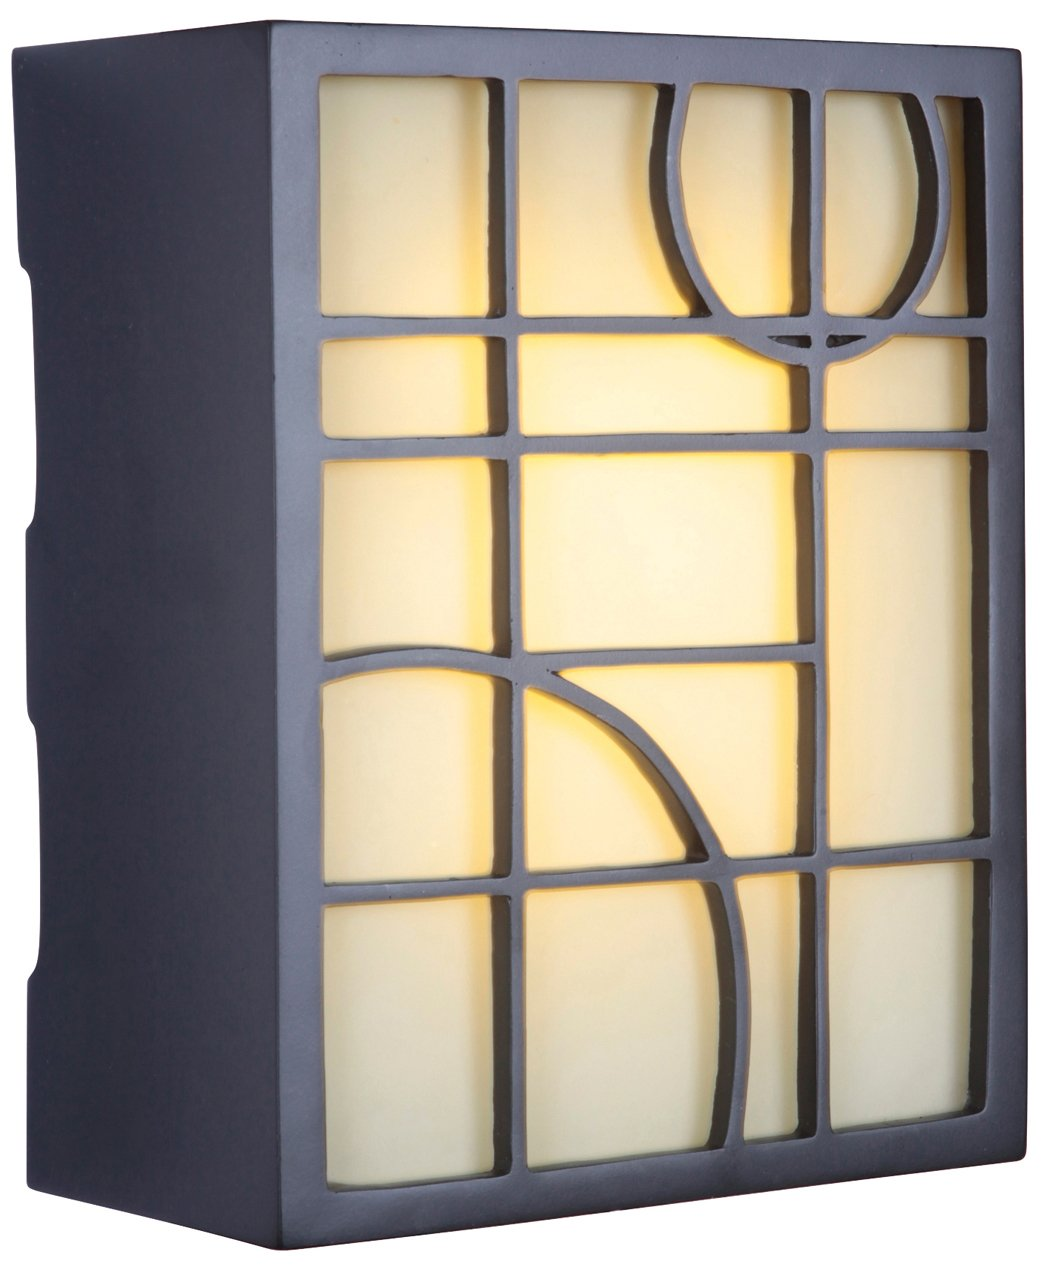 Craftmade ICH1660-OB Geometric Lighted Chime by Teiber